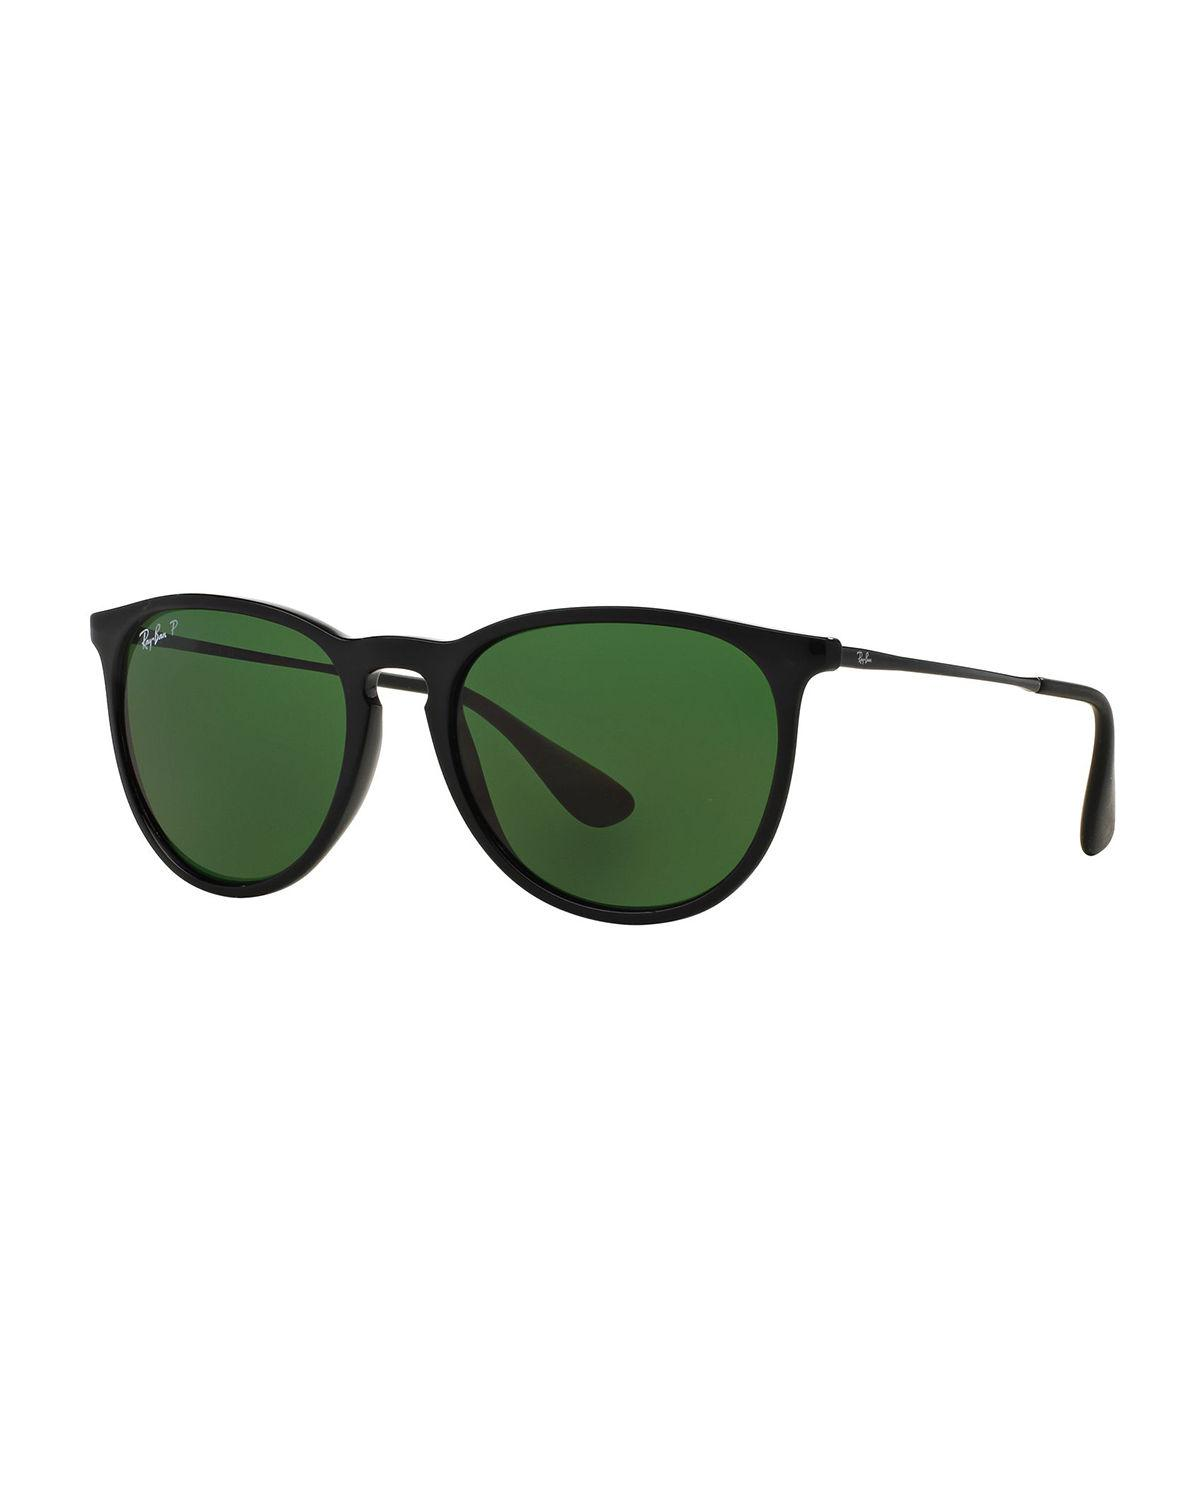 fc0f847259 Lyst - Ray-Ban Polarized Aviator Sunglasses in Green for Men